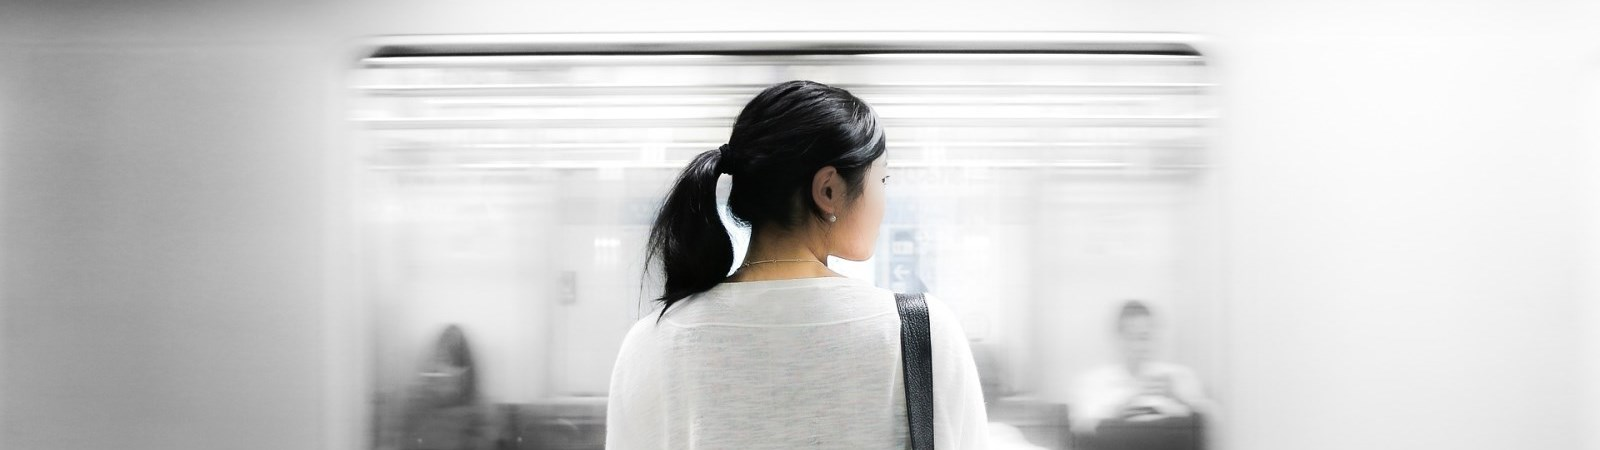 Image of a commuter.